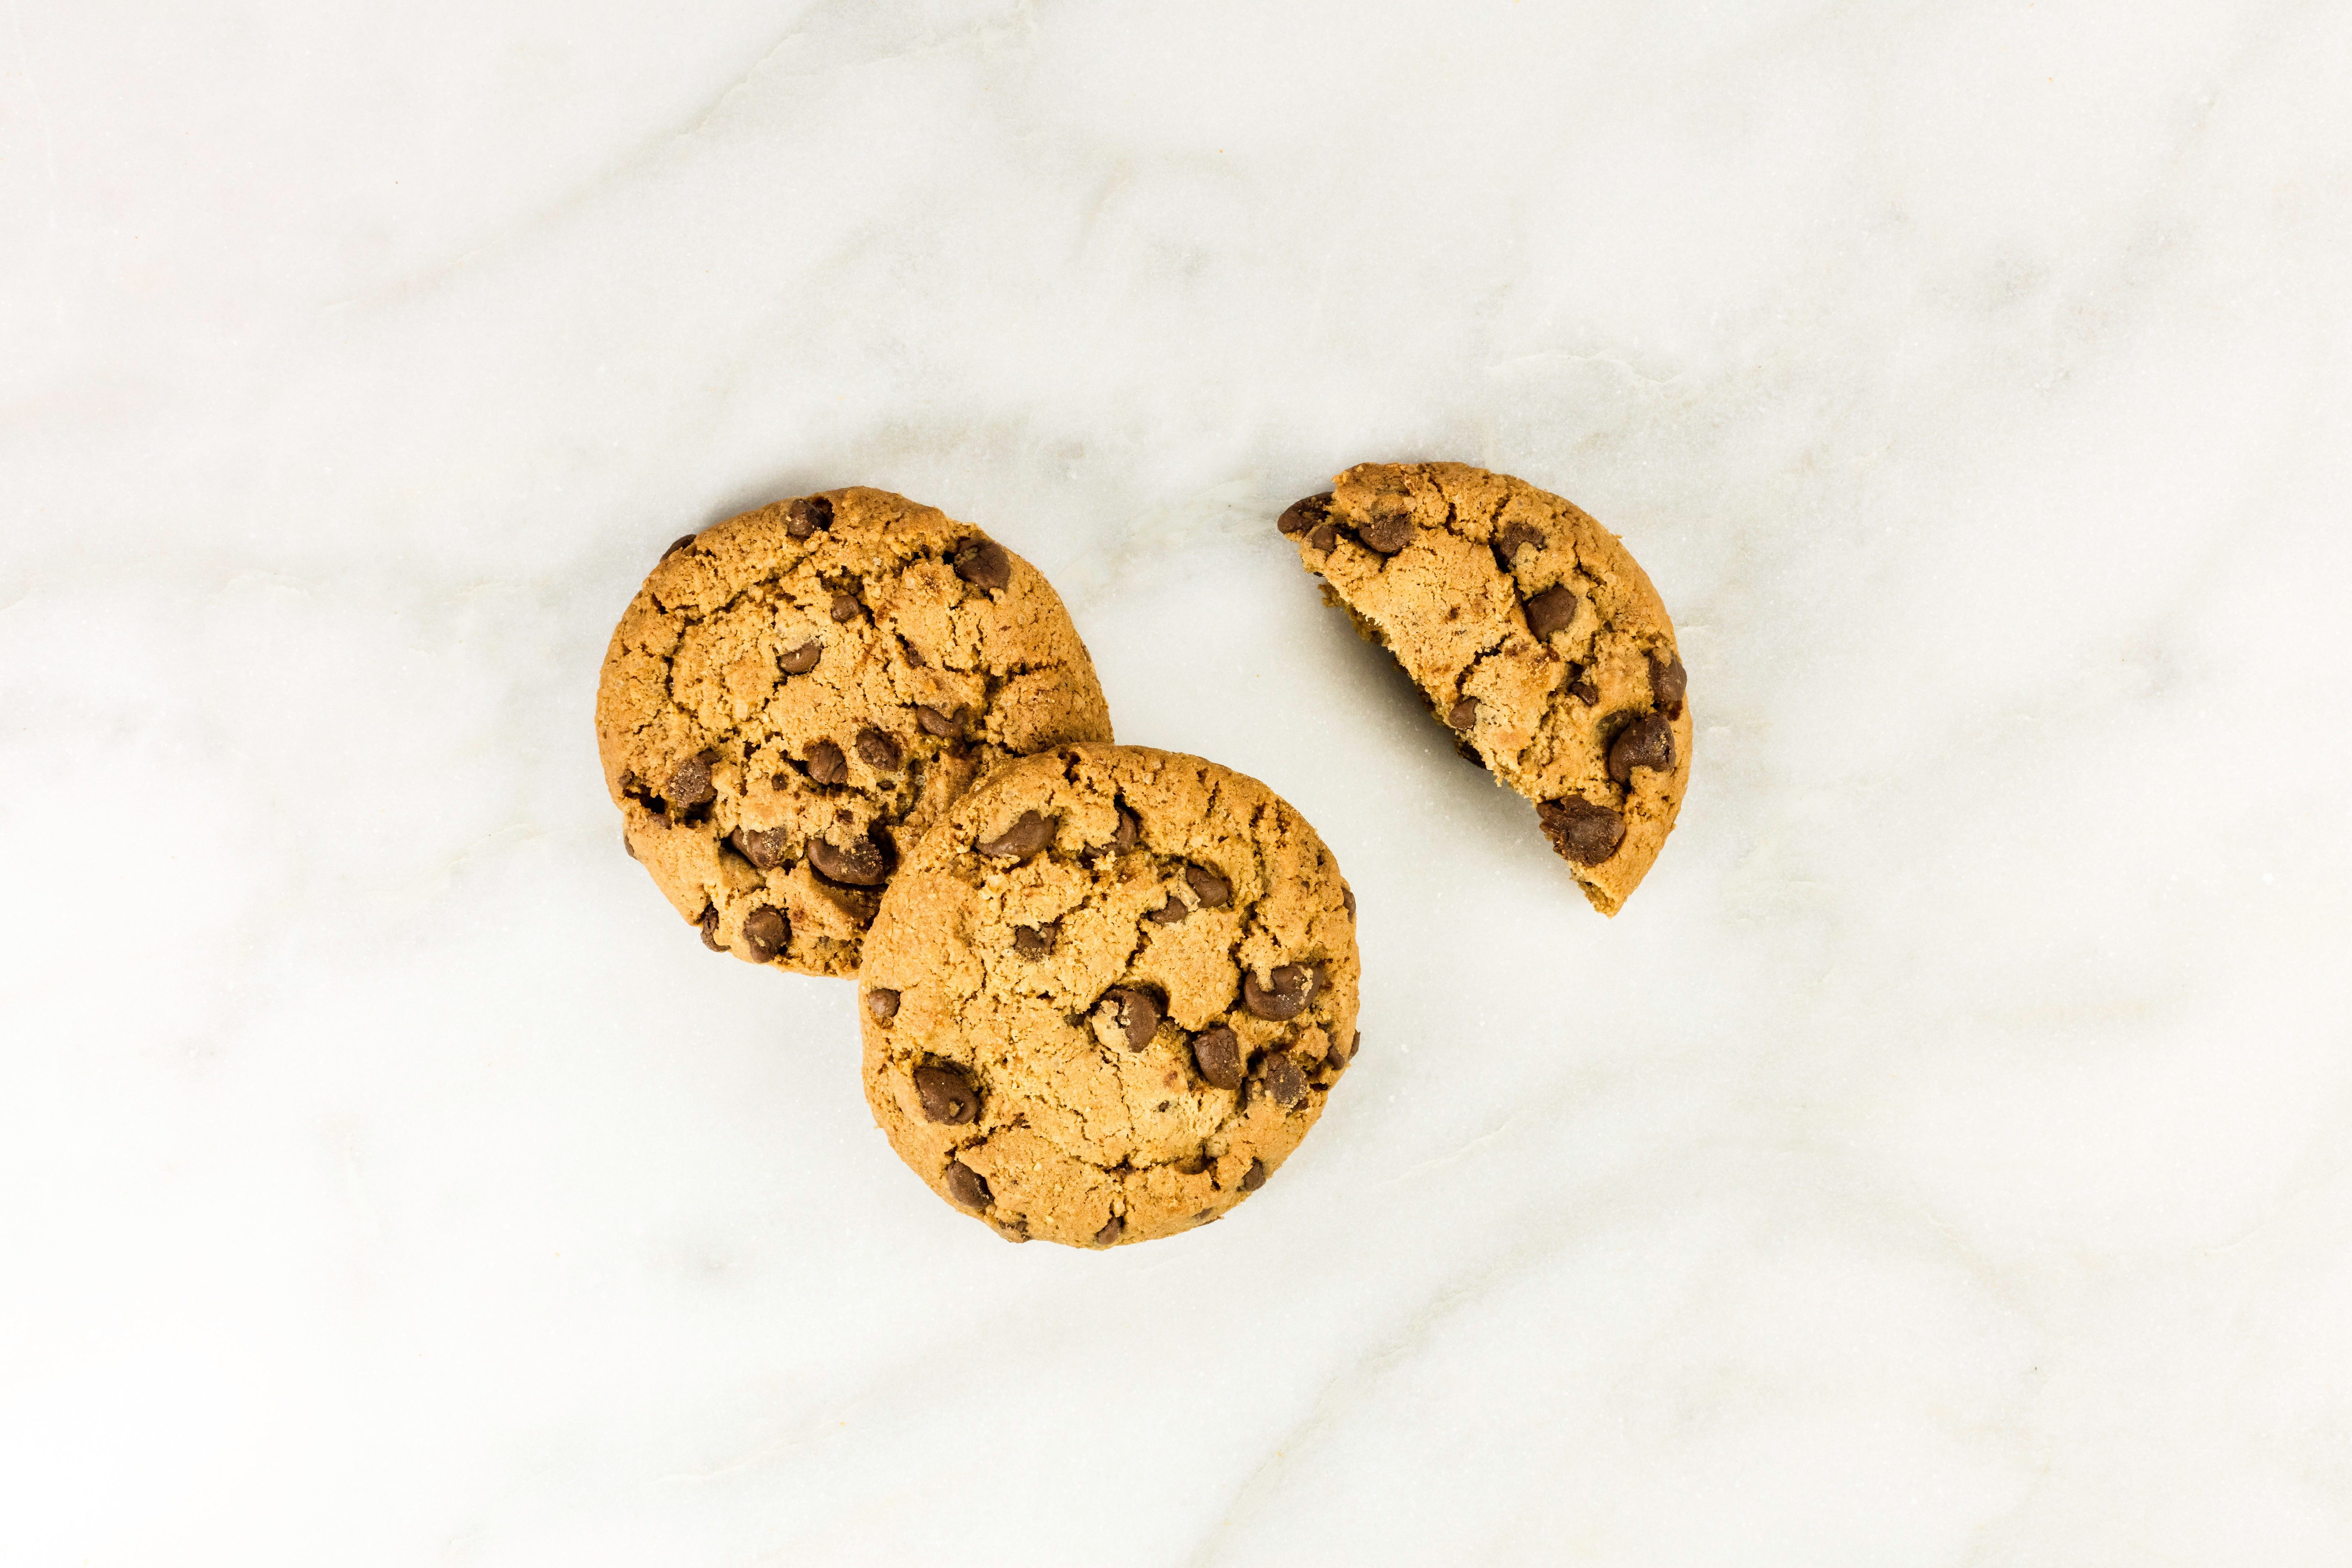 A photo of chocolate chips cookies, shot from above on a white marble background, with a place for text